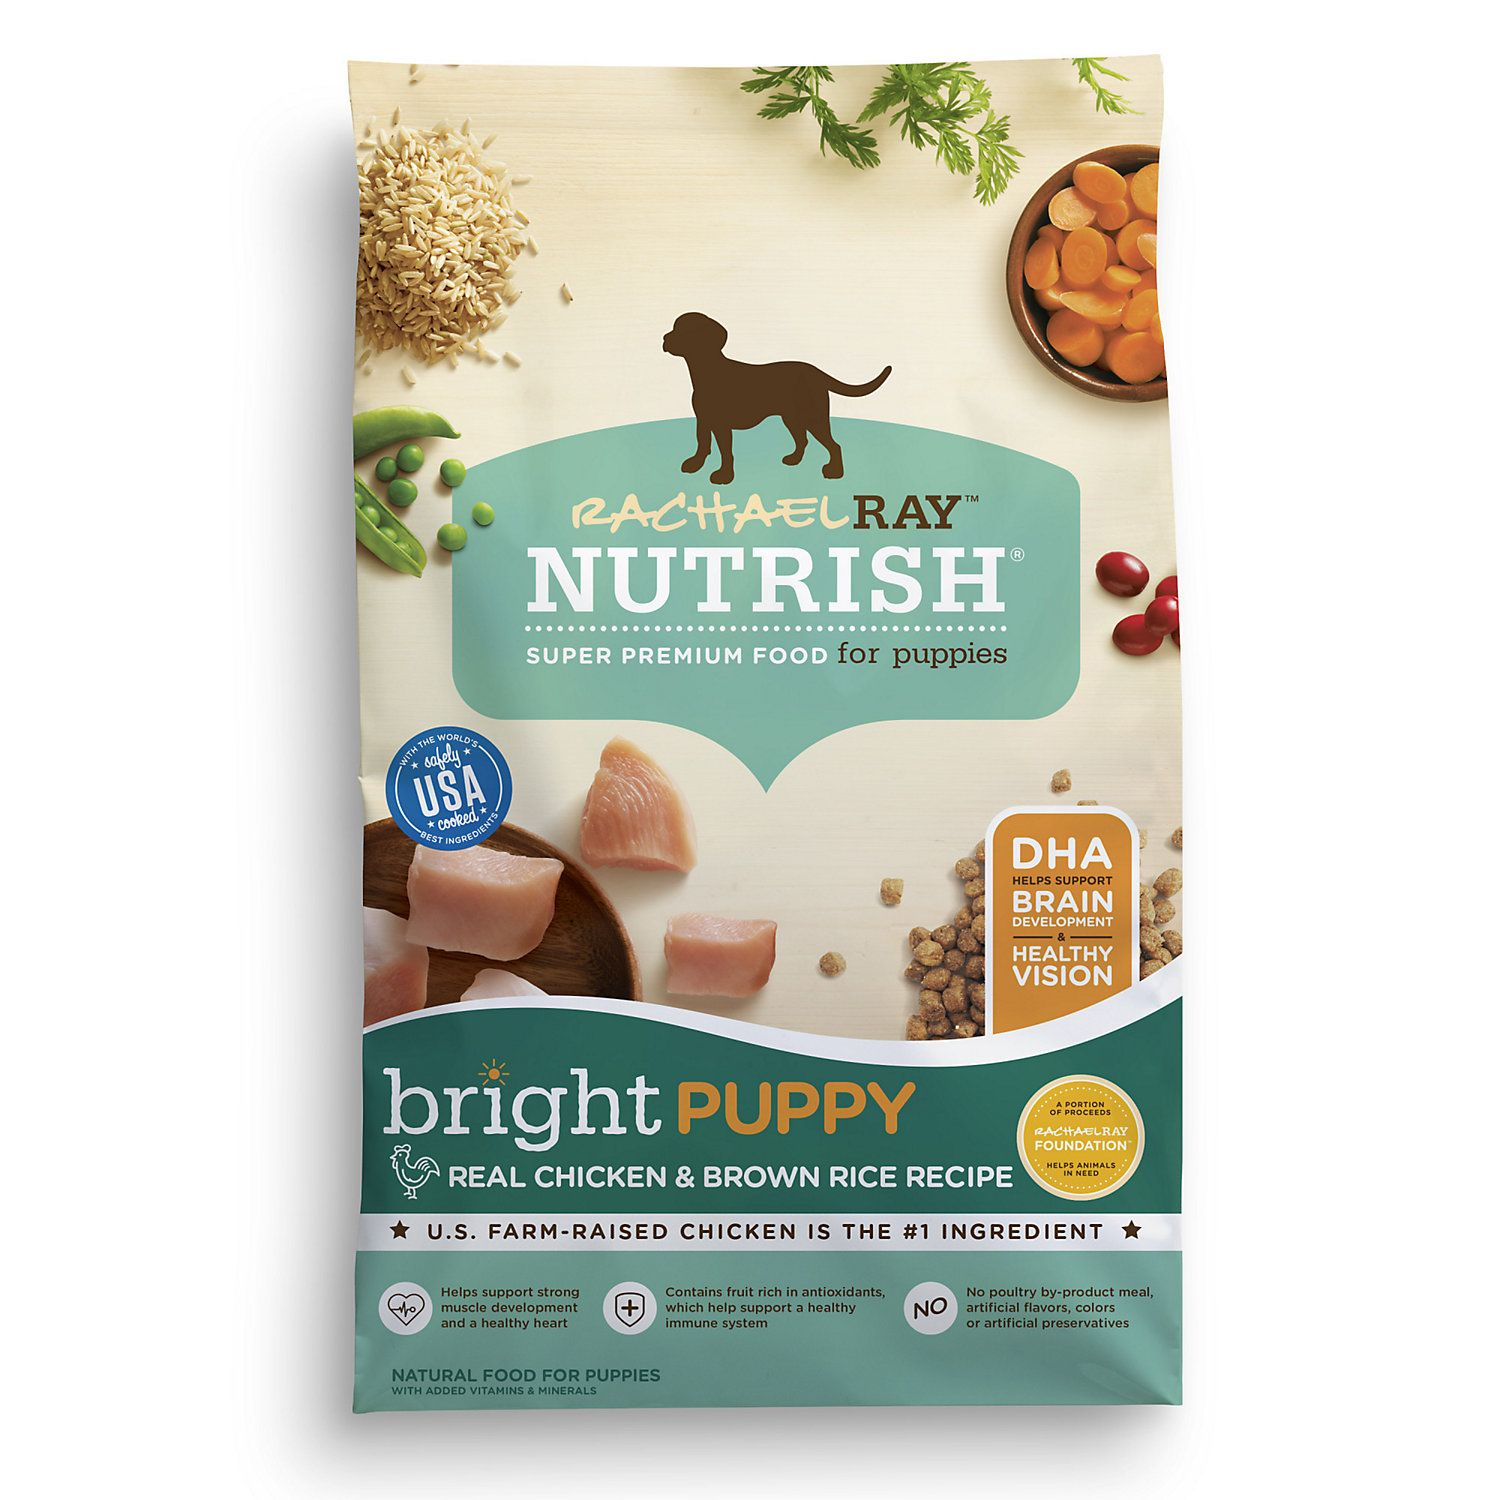 Rachael Ray Nutrish Bright Puppy Natural Real Chicken Brown Rice Recipe Dry Food 14 Lbs In 2020 Brown Rice Recipes Dog Food Recipes Chicken Brown Rice